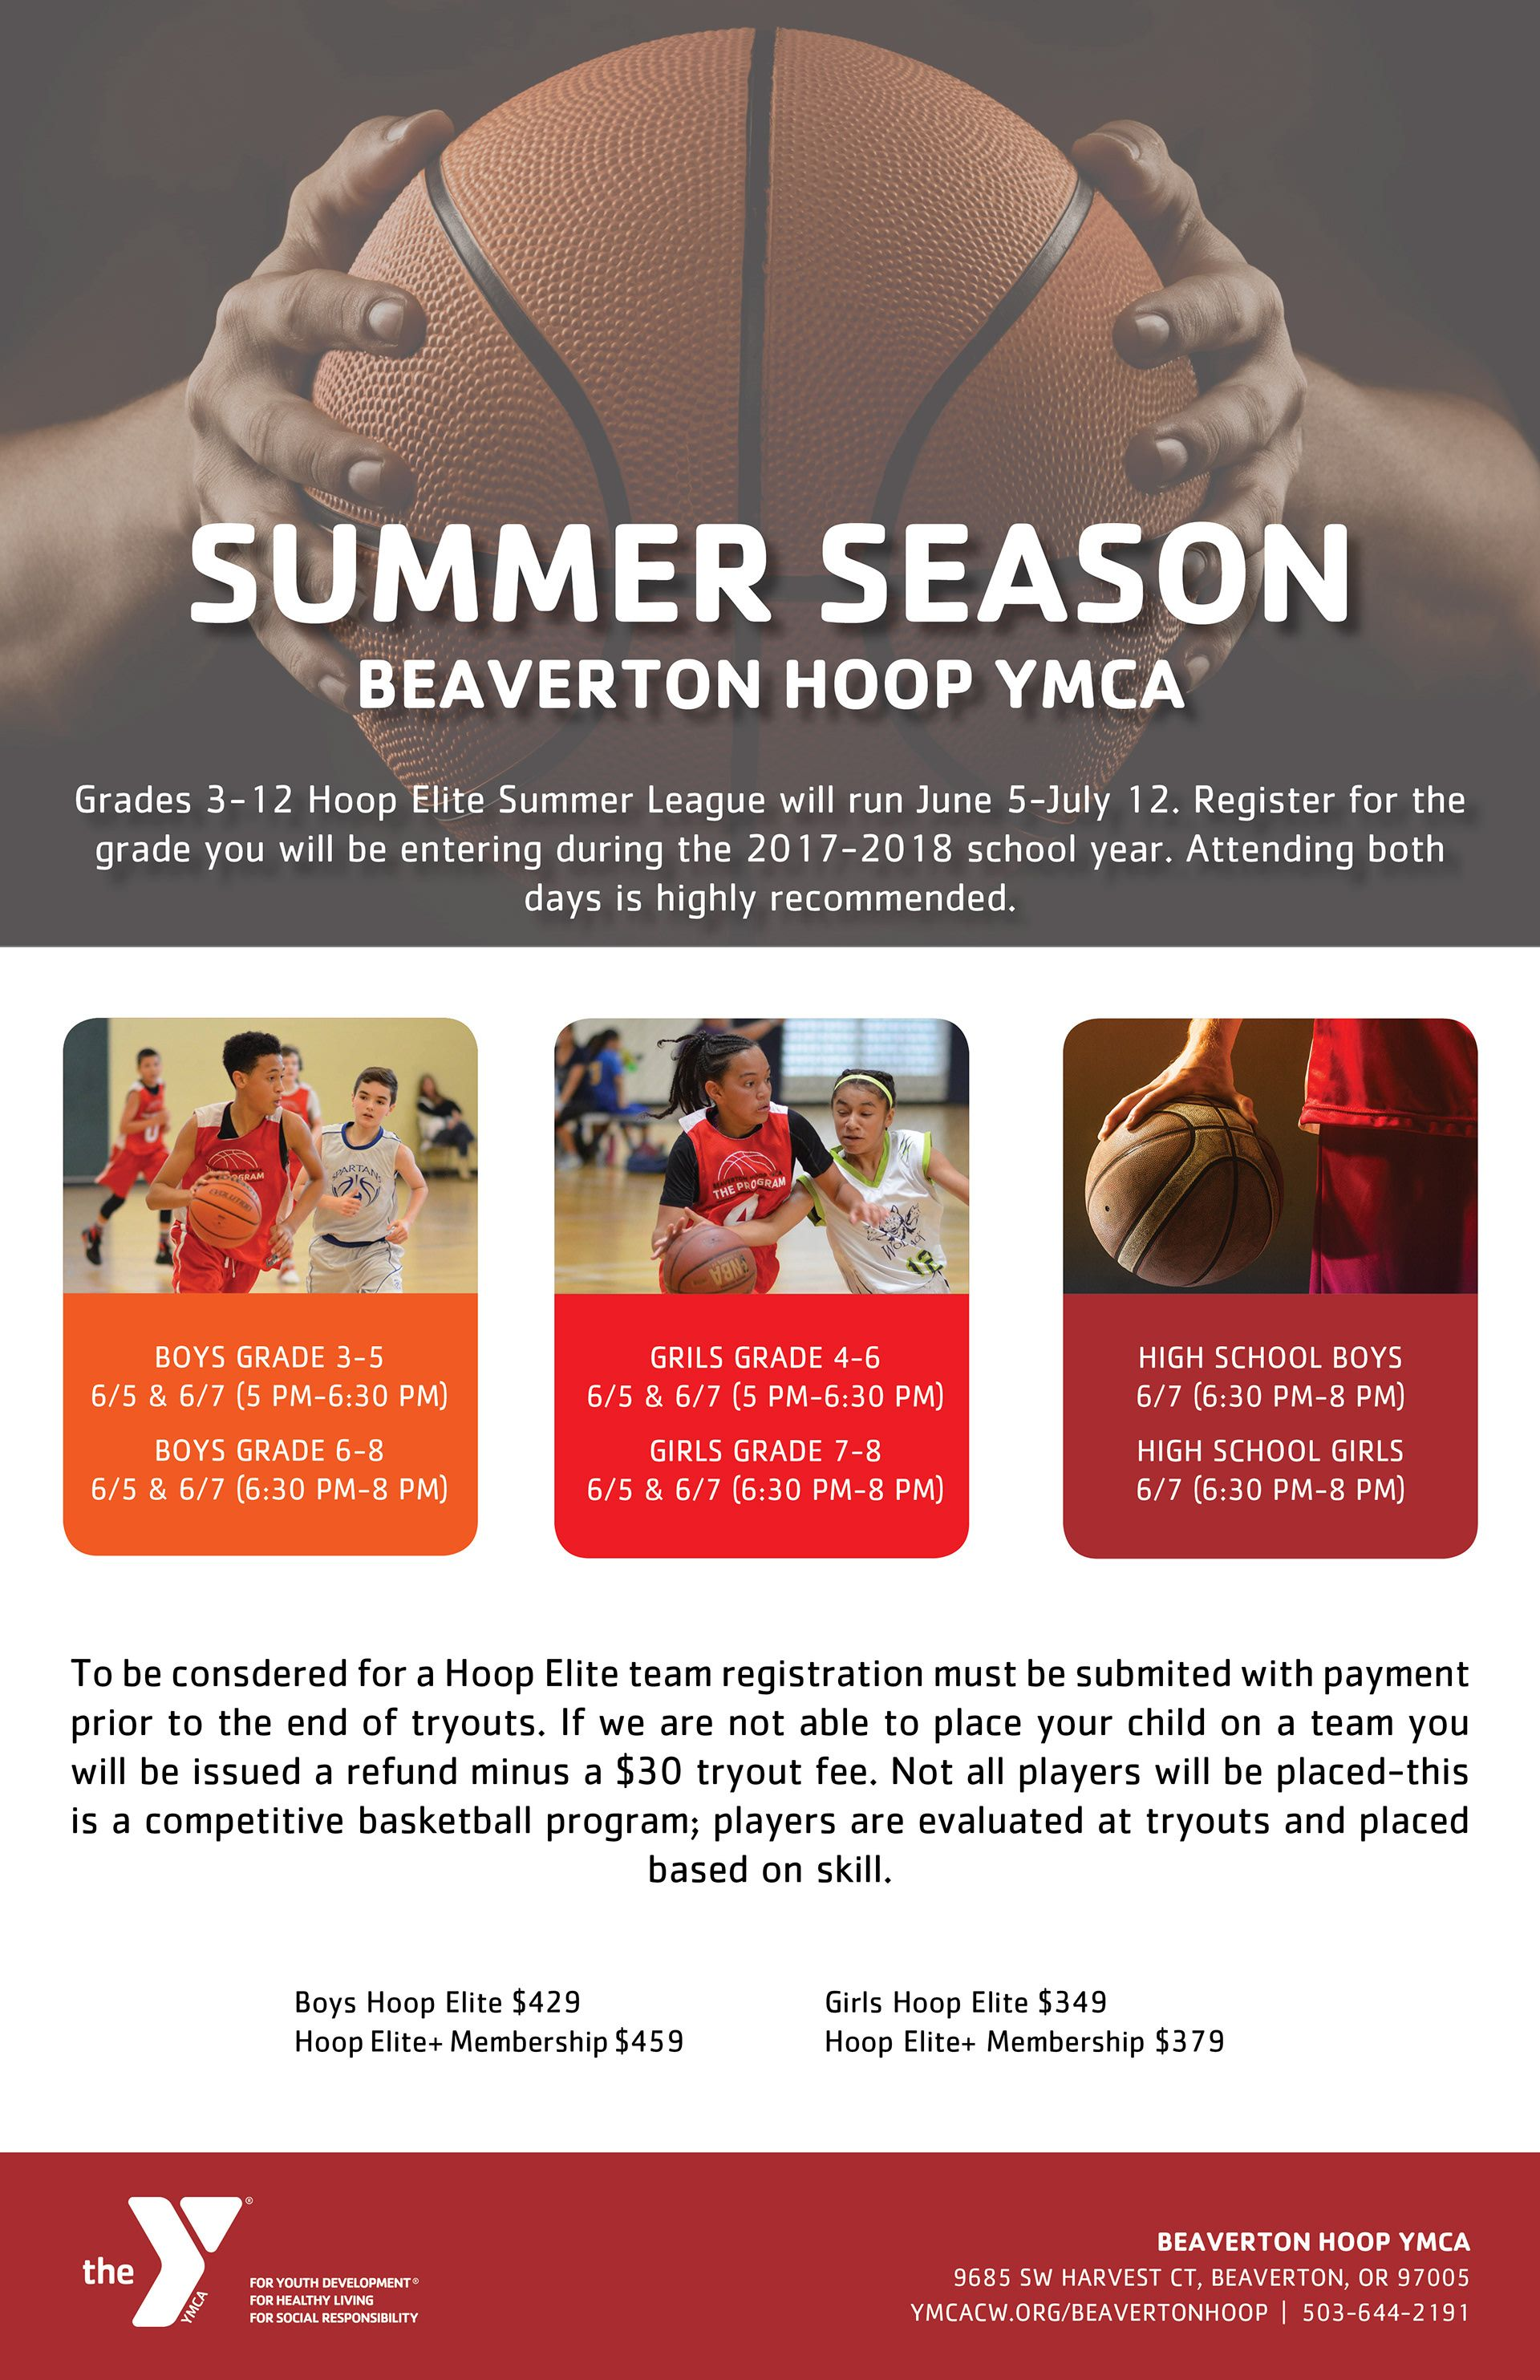 Concept Layout Design Ymca Basketball Poster For Tryouts Ymca Of Columbia Willamette Beaverton Hoop Ymca Offers Compe Ymca Youth Programs Marketing Poster